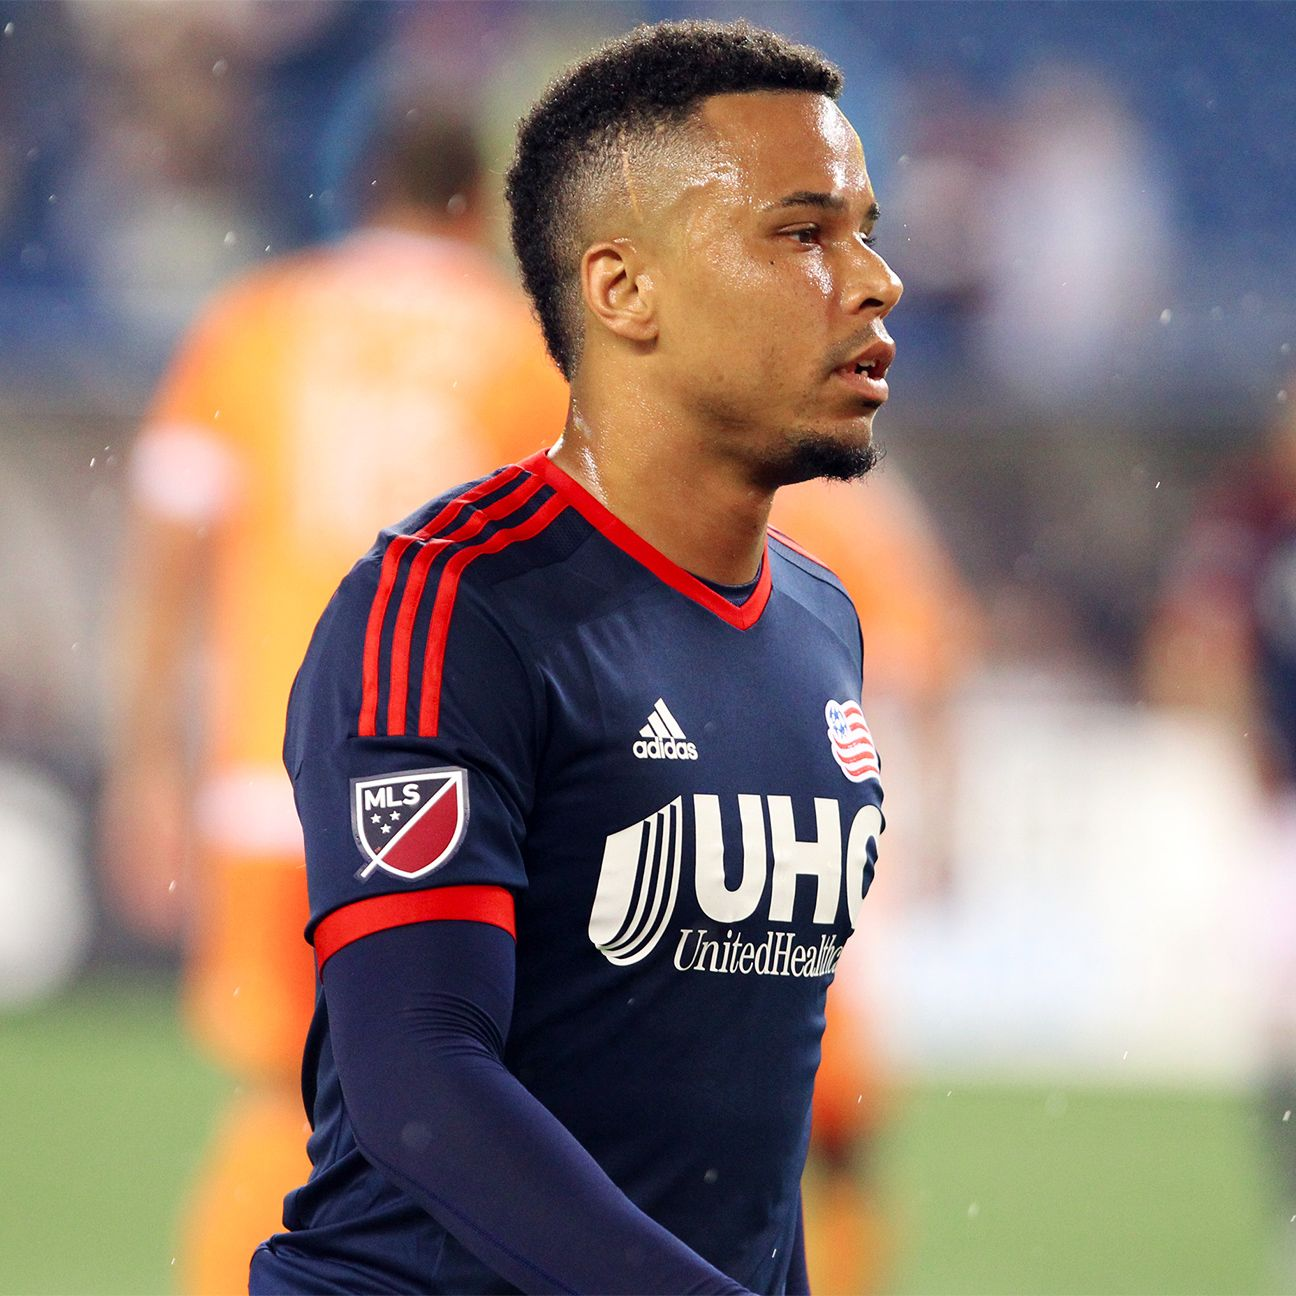 Charlie Davies is having a difficult time coming to terms with the Revs' disappointing season.